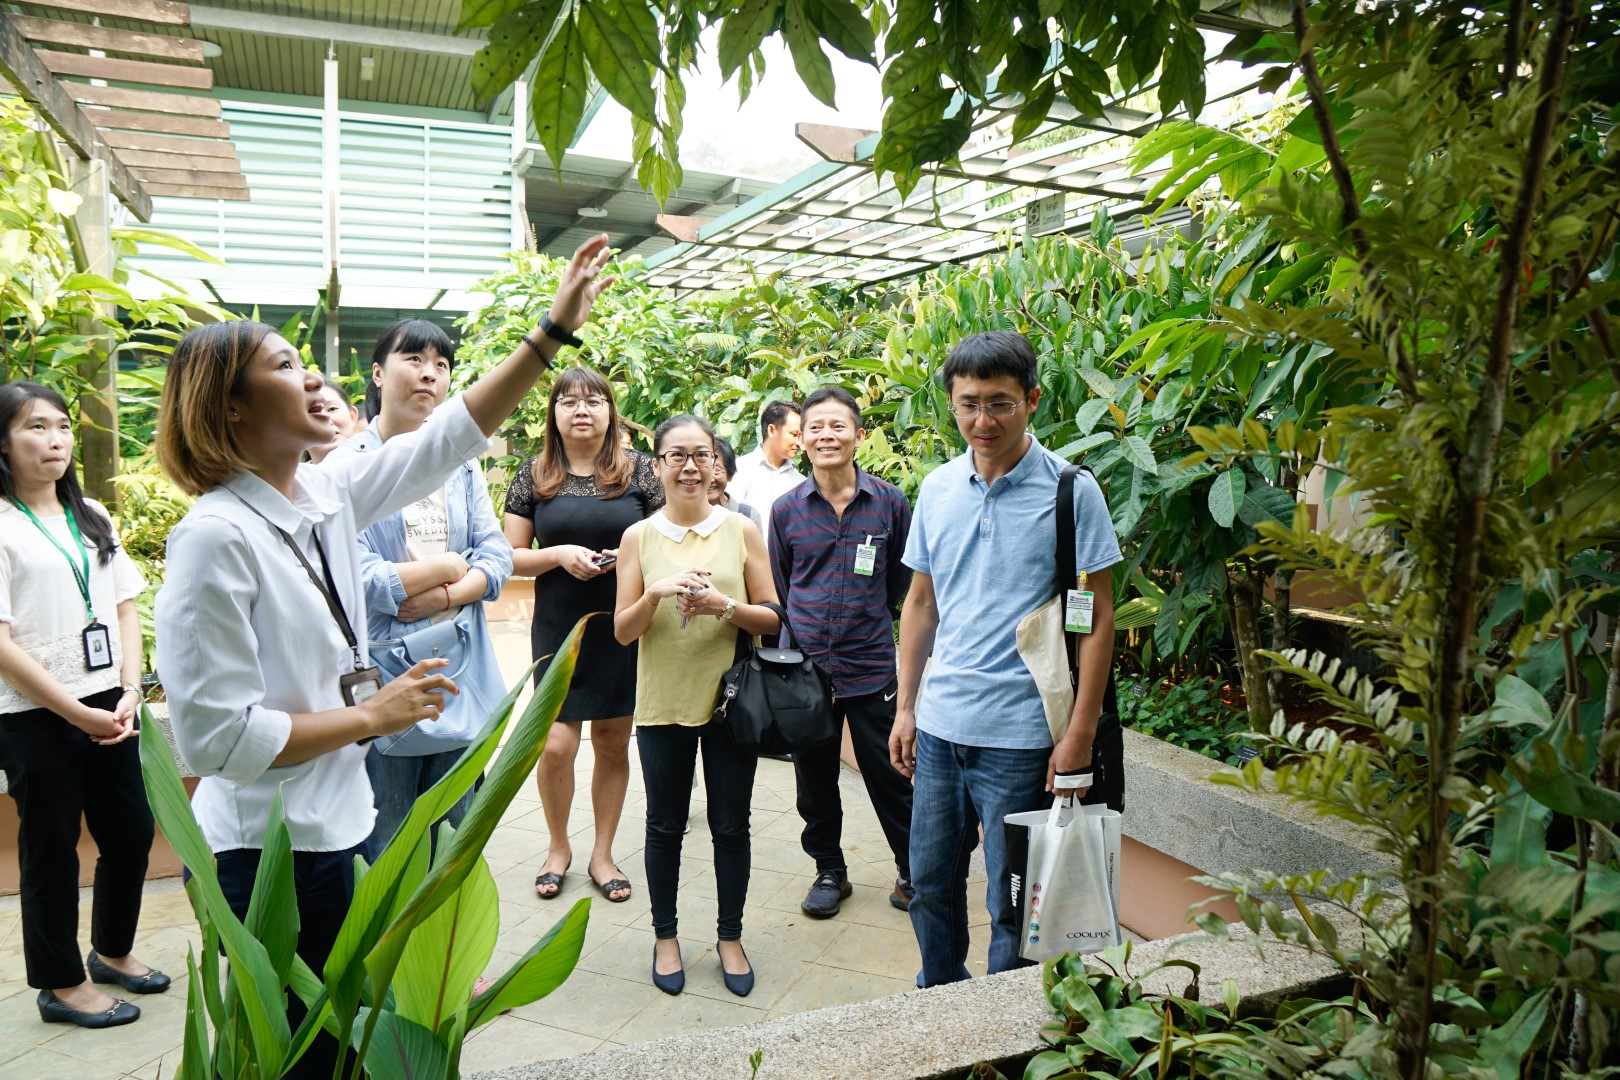 tour at ethnogarden